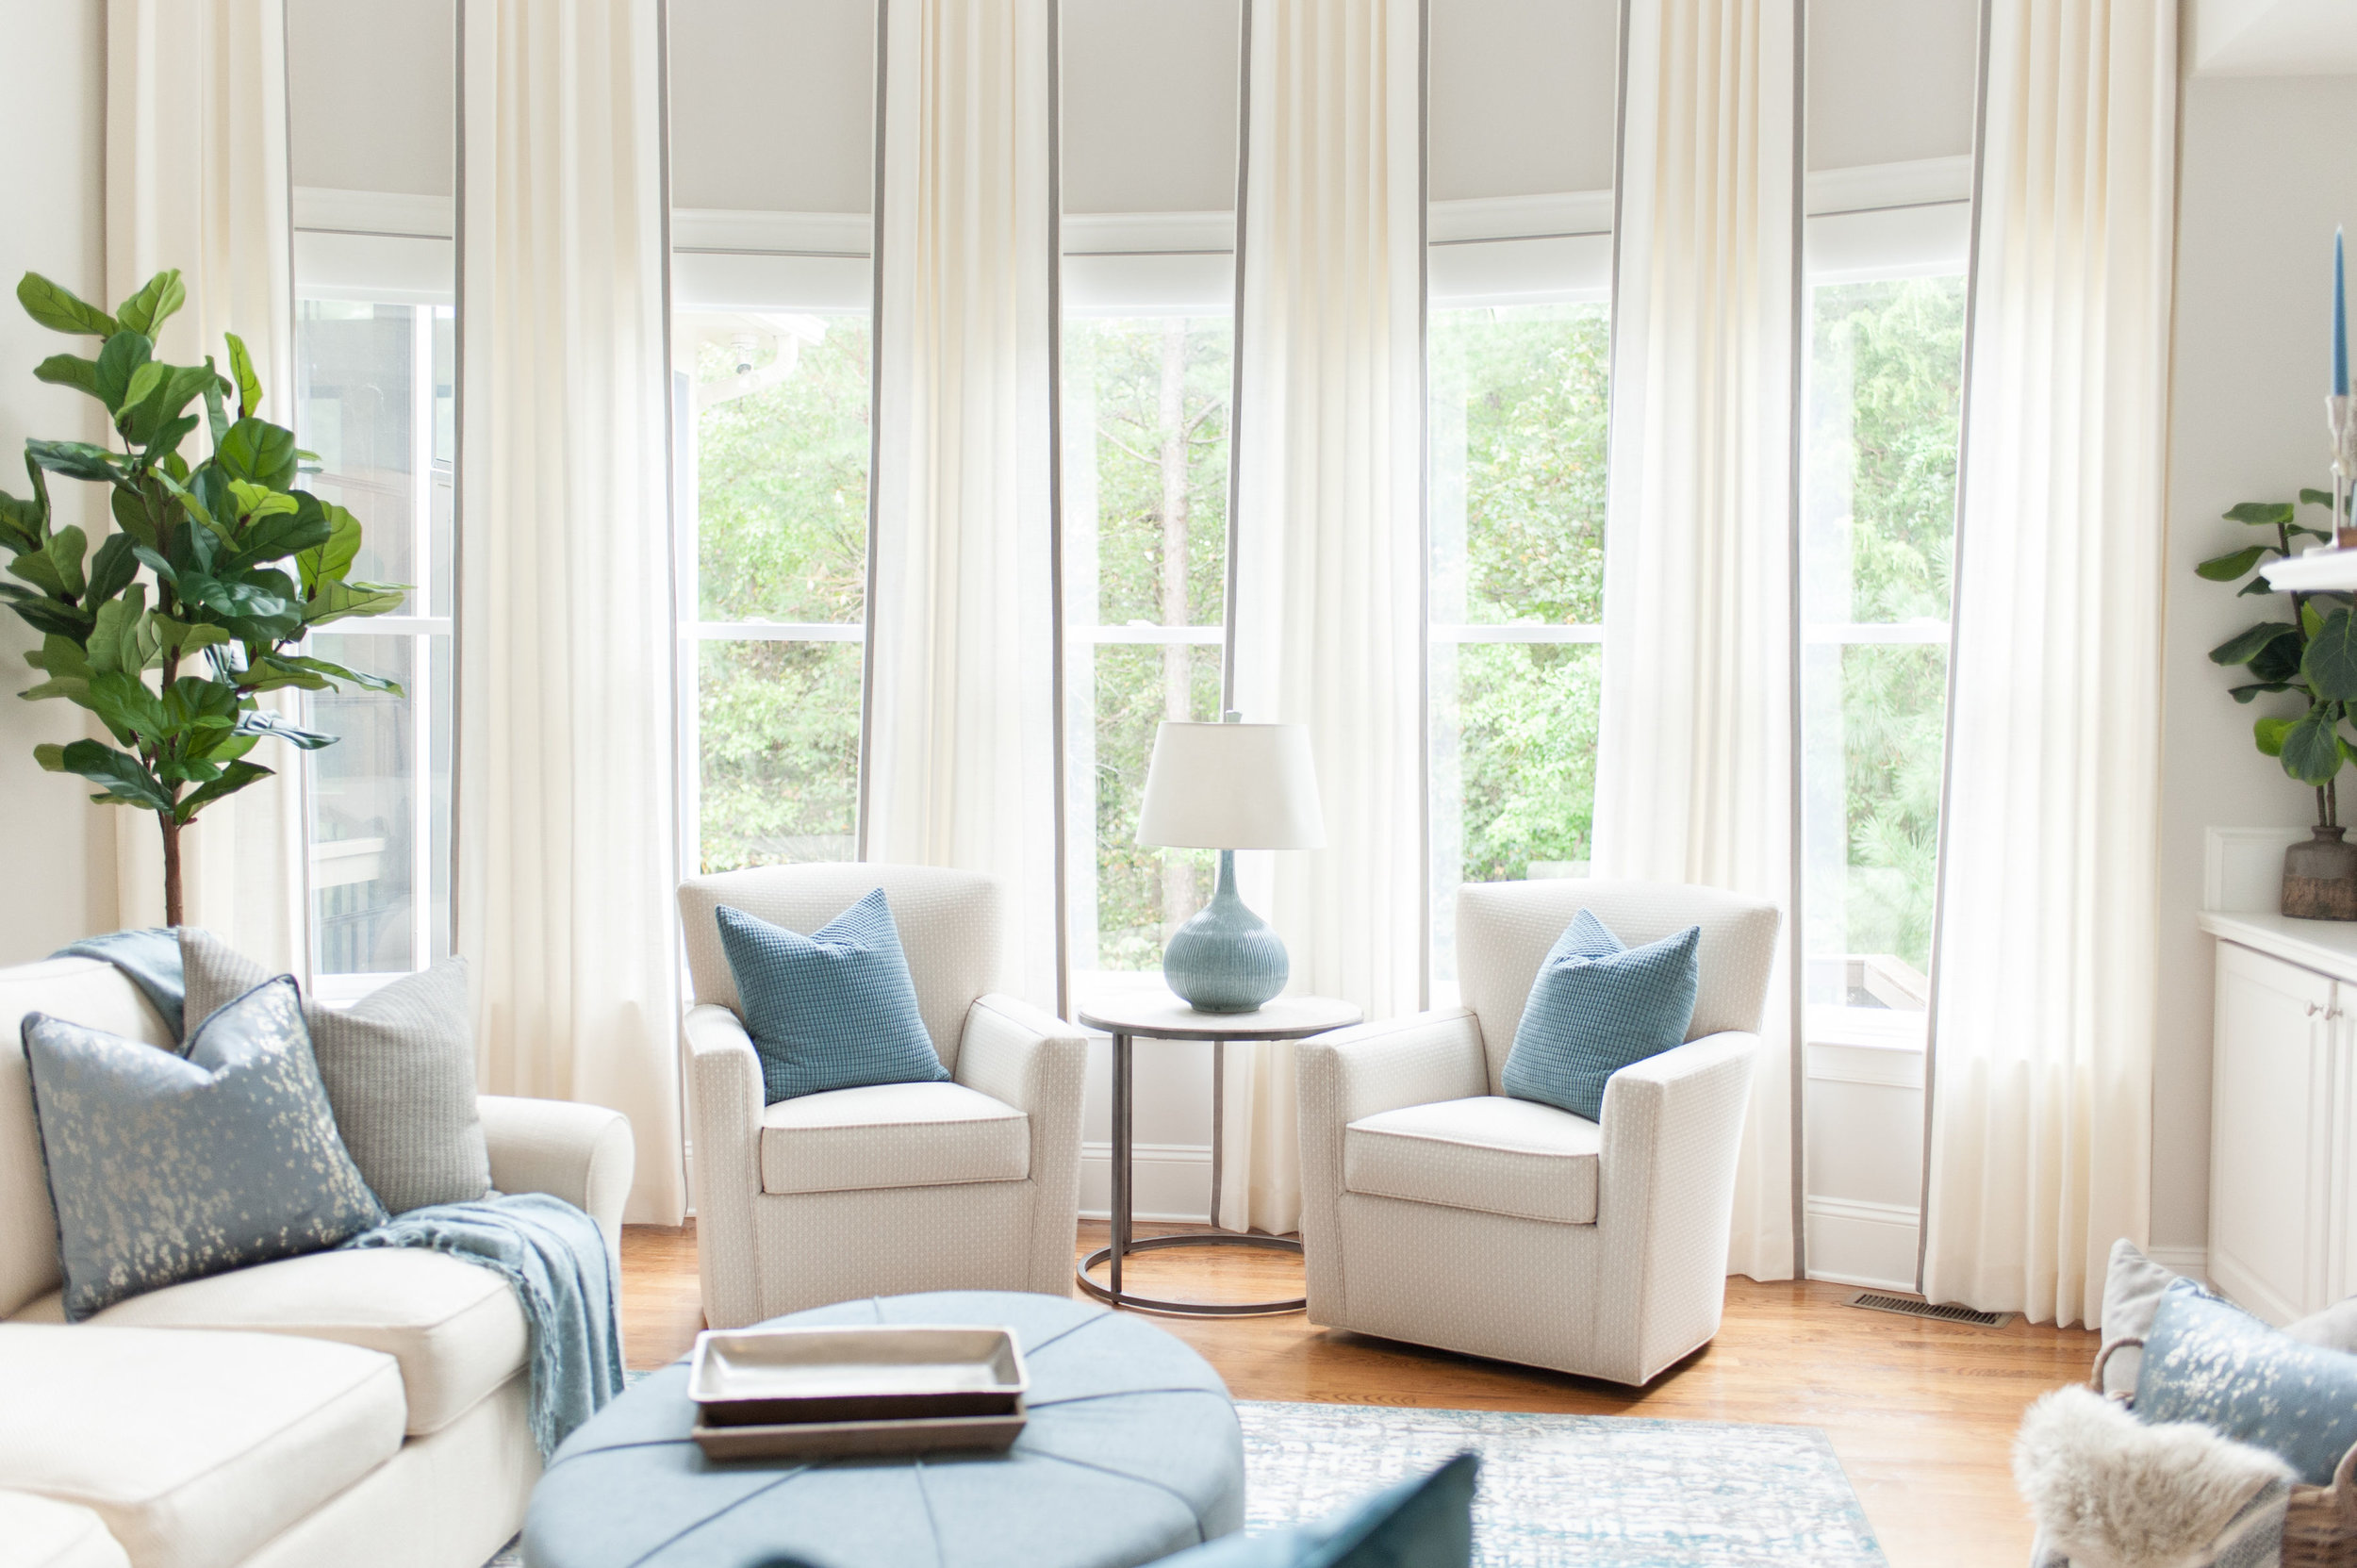 Custom Window Treatment Consultation - $250(Click to Learn More)